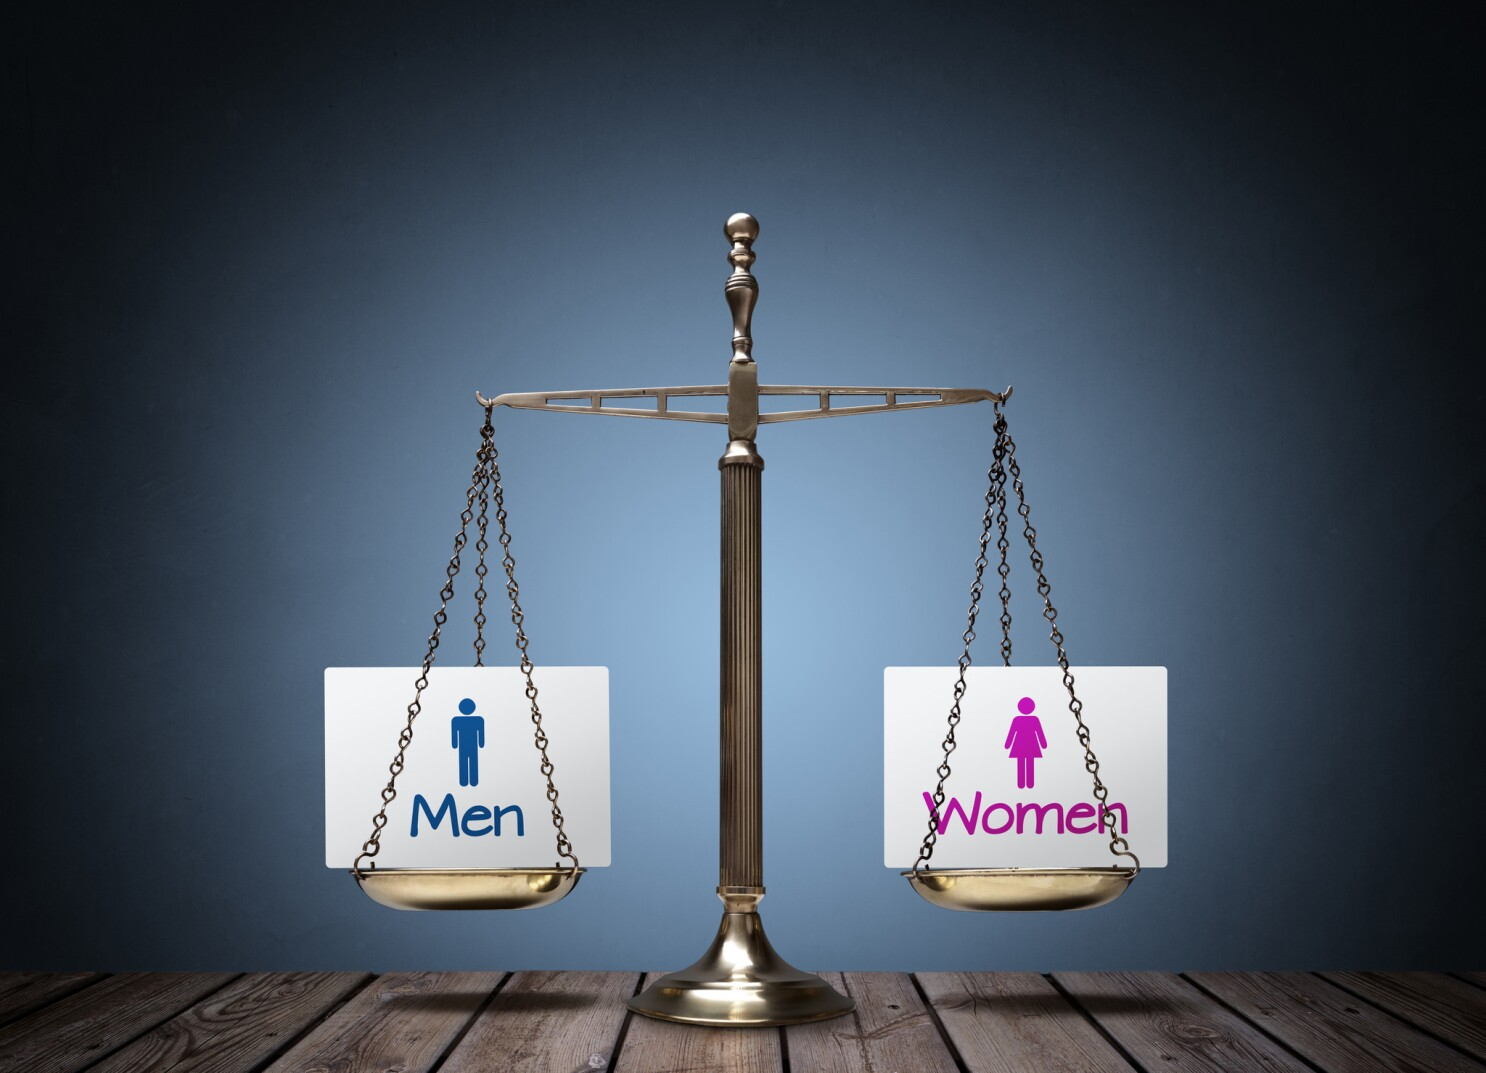 How much progress have we made in gender equality? Not enough